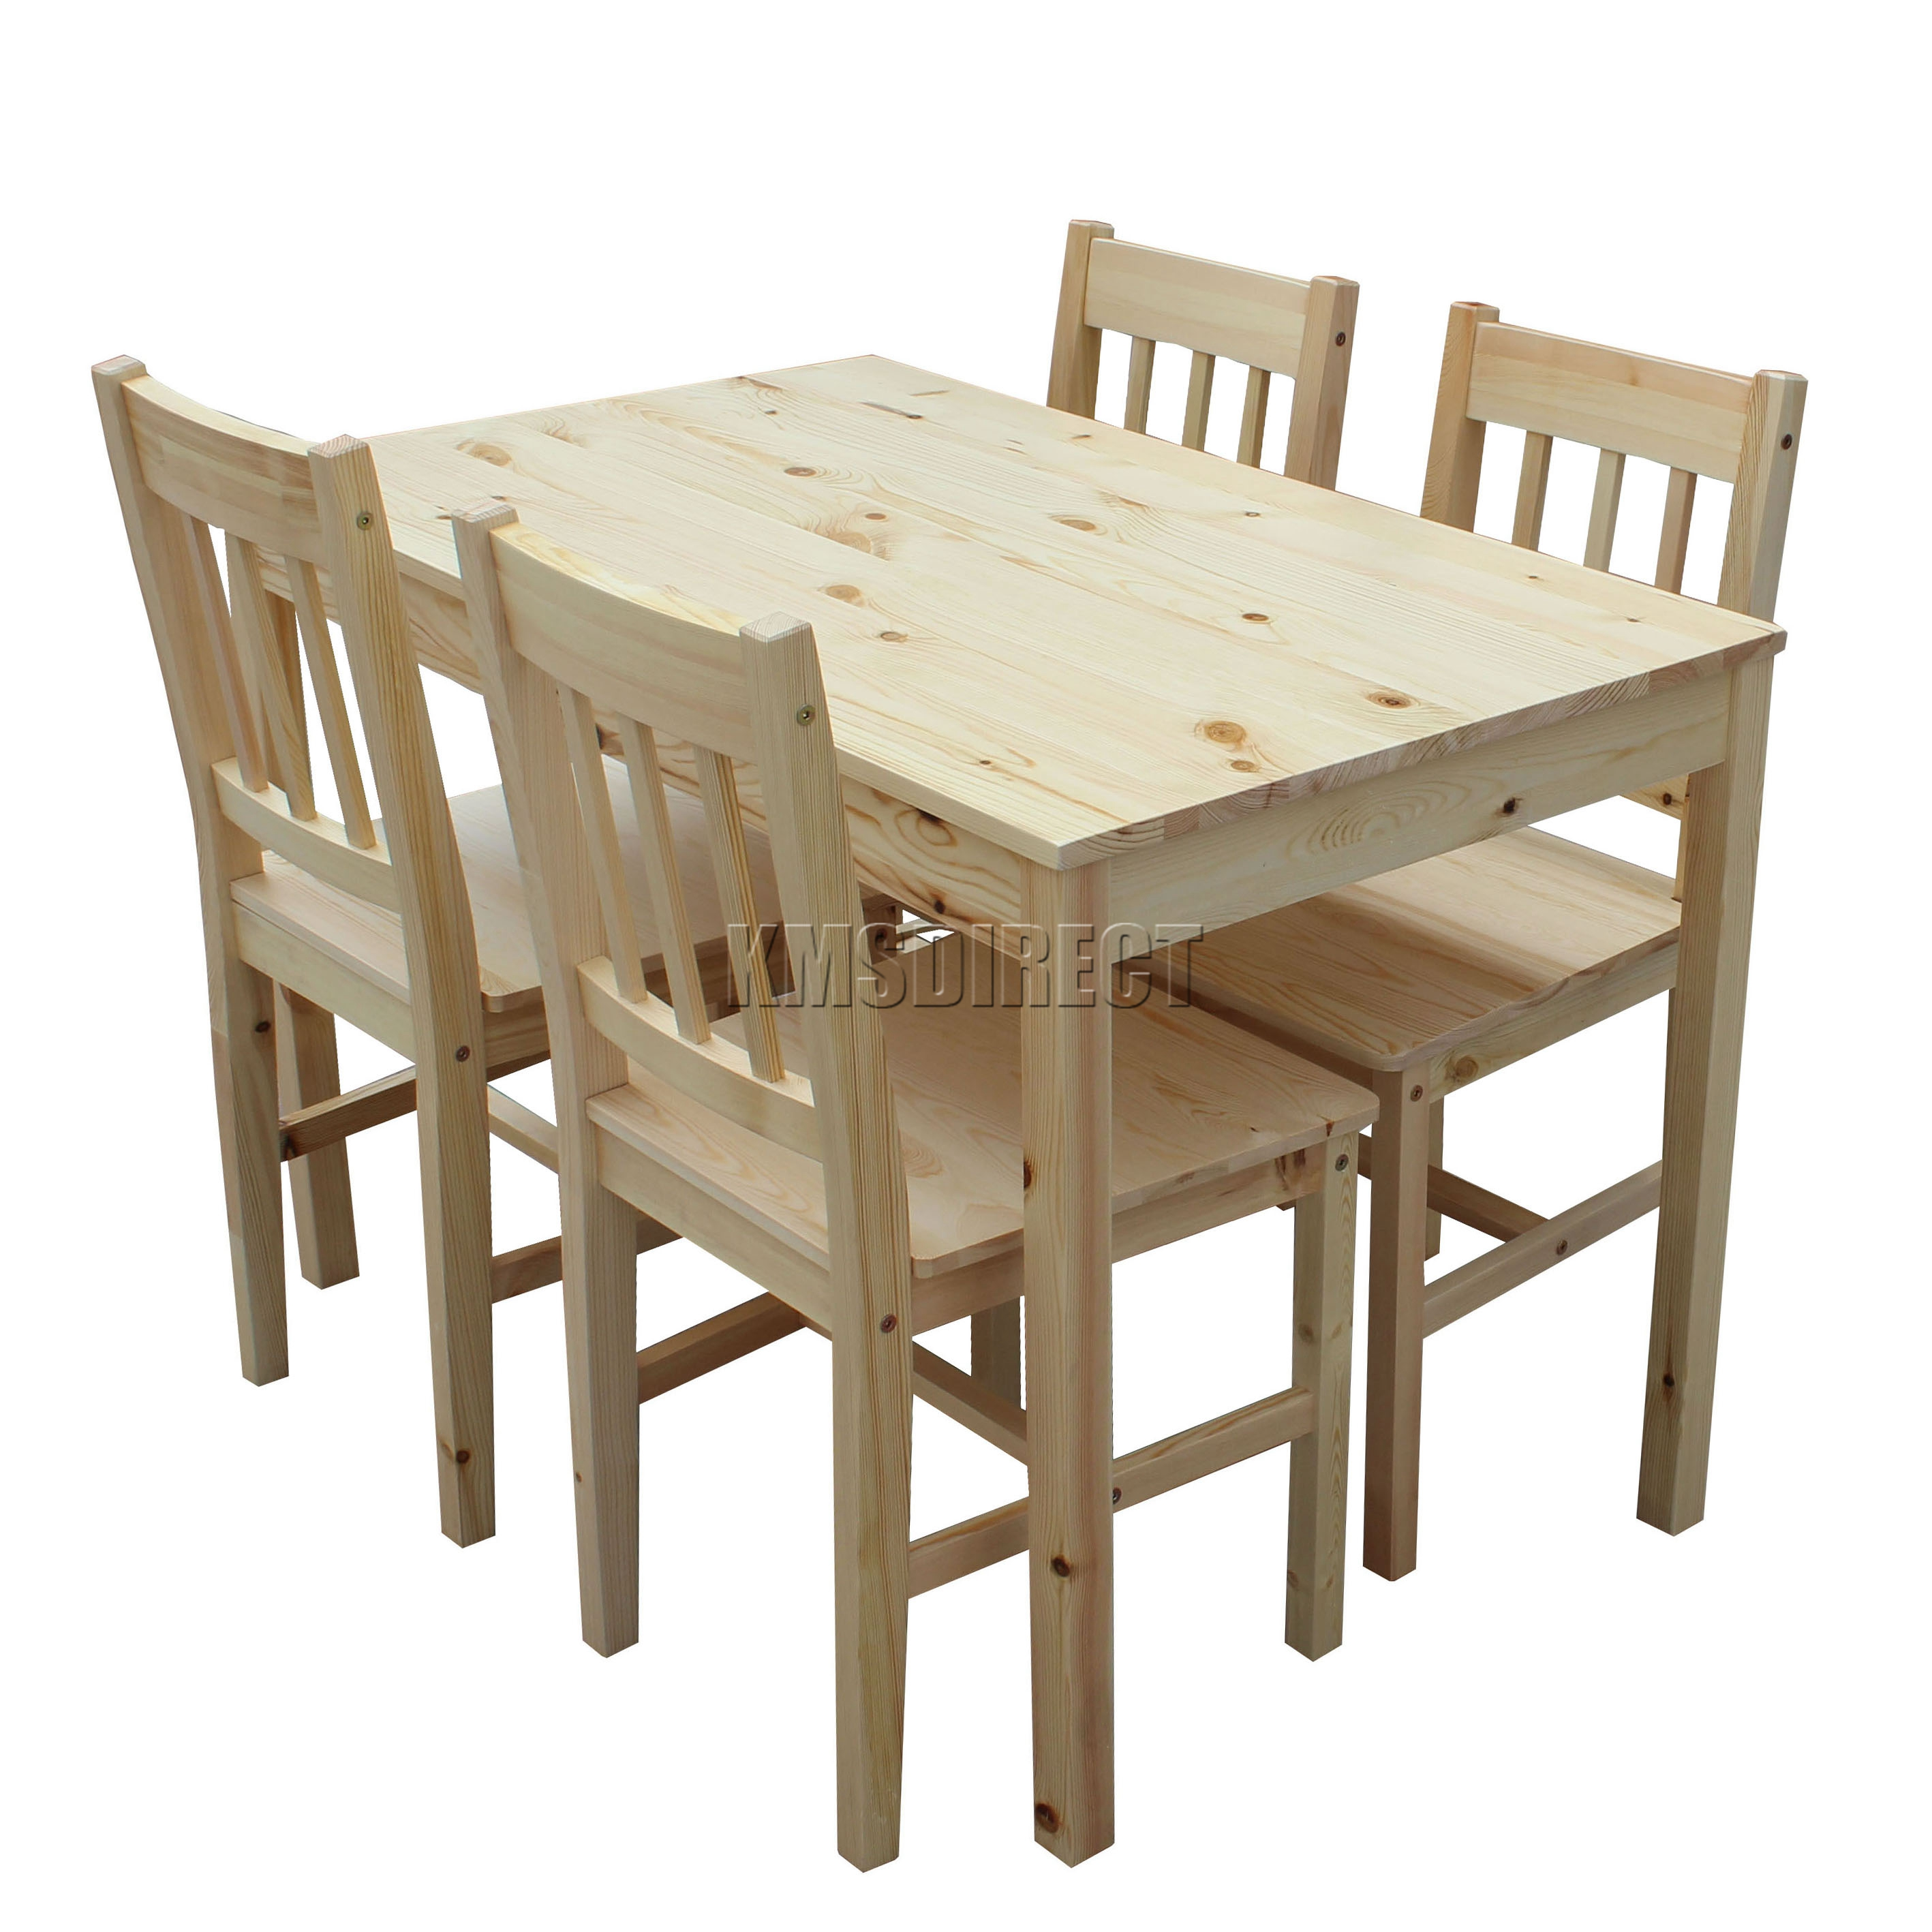 foxhunter quality solid wooden dining table and 4 chairs set kitchen ds02 pine ebay. Black Bedroom Furniture Sets. Home Design Ideas